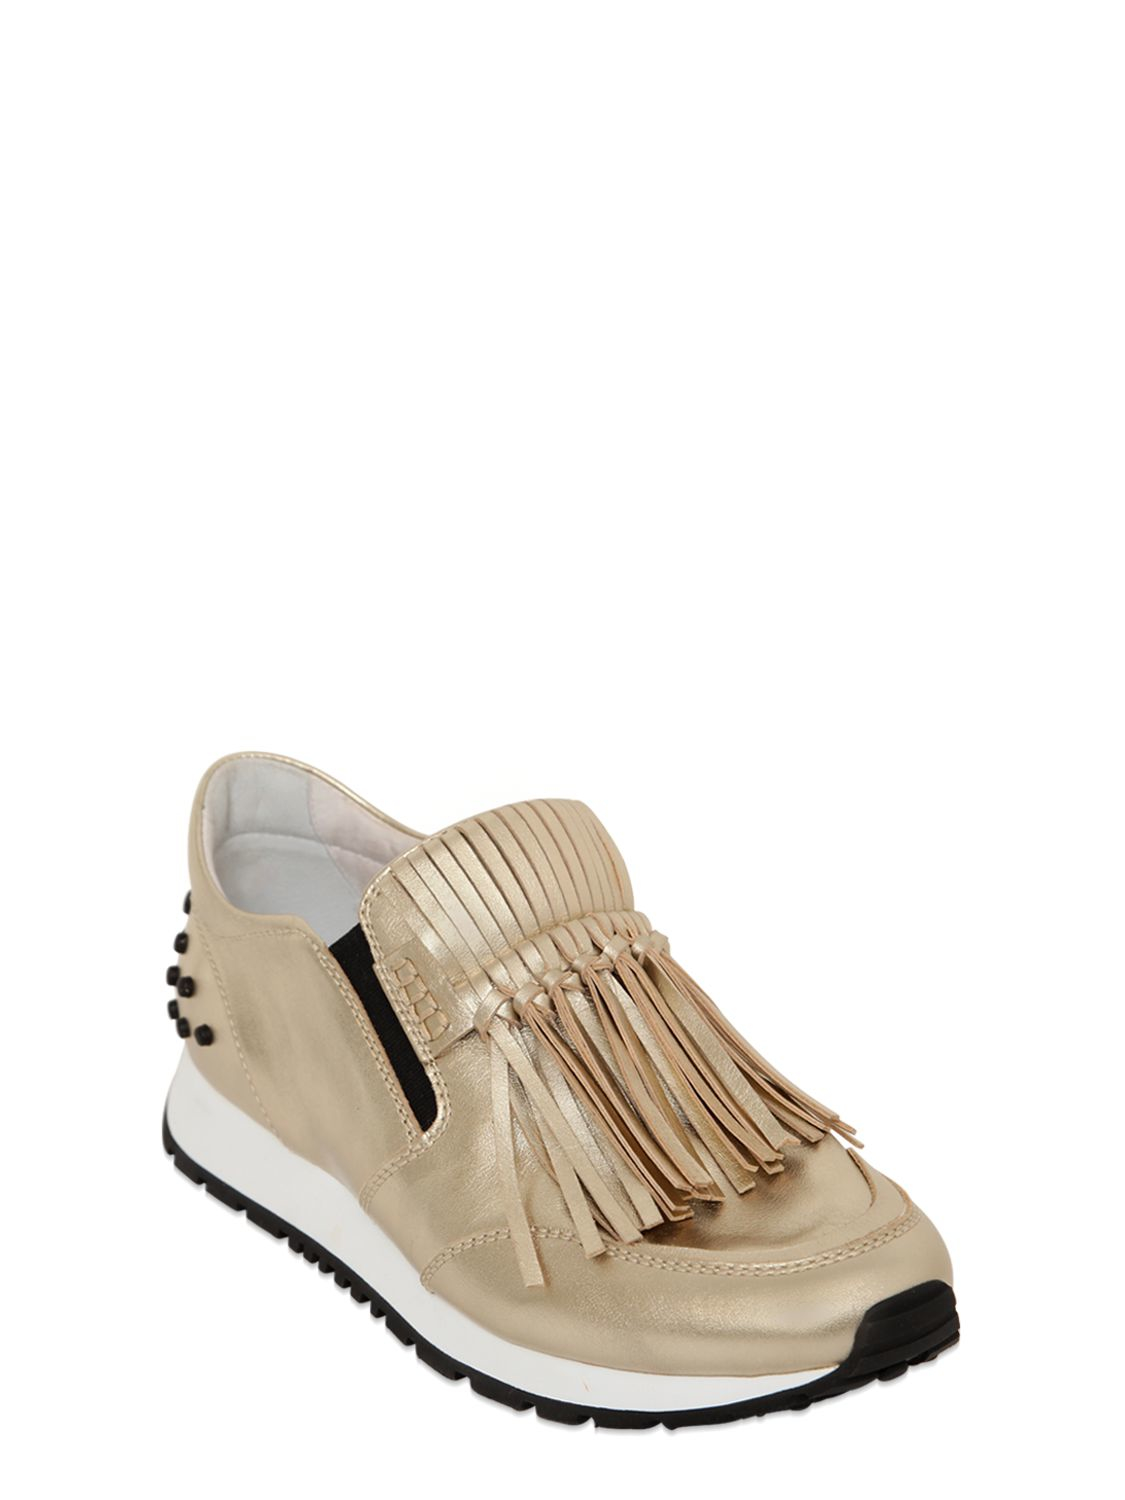 Tod's 20mm Fringed Metallic Leather Sneakers